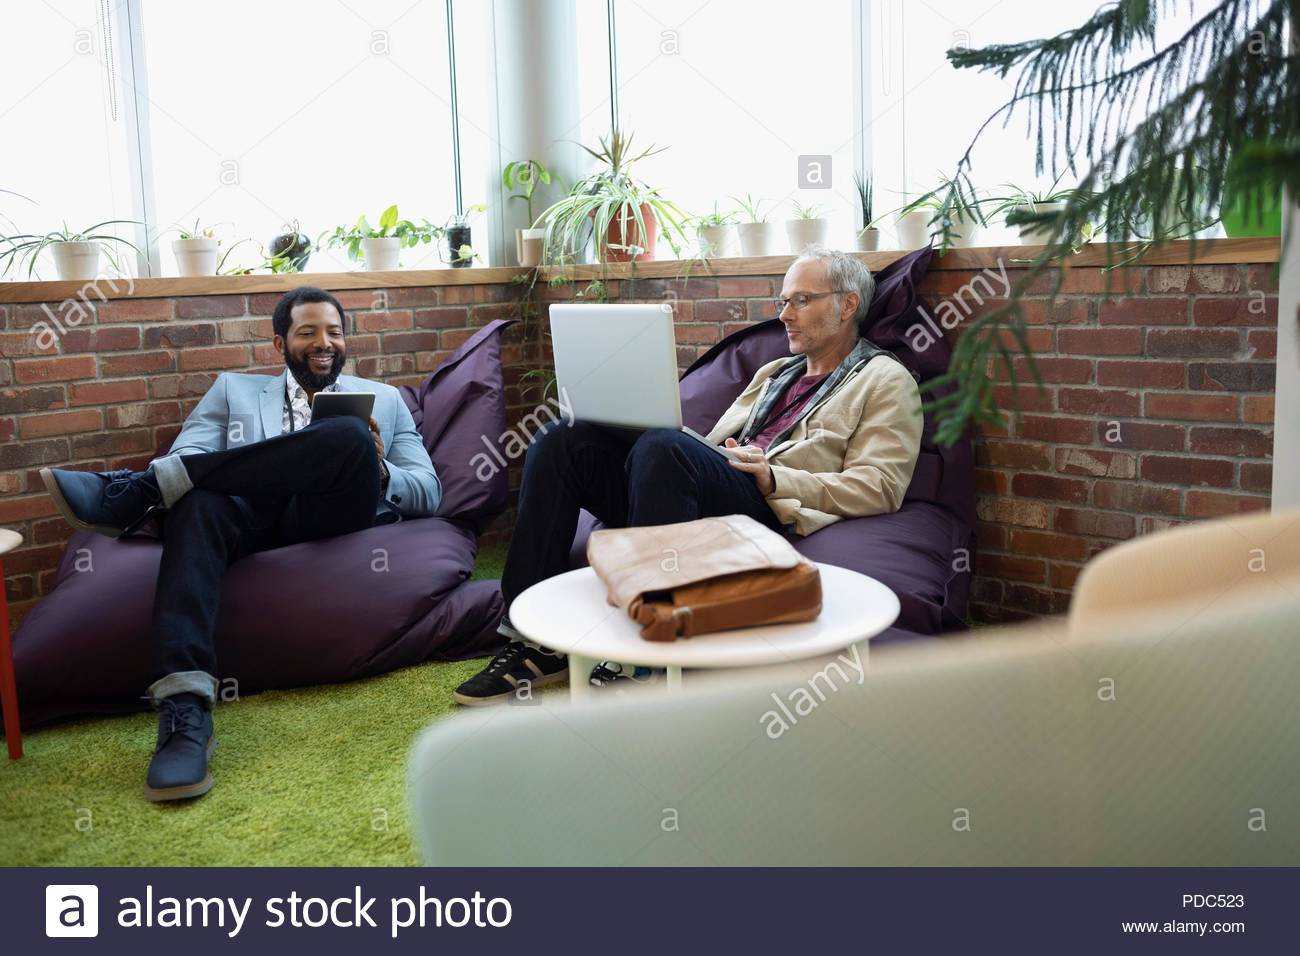 Creative businessmen using digital tablet and laptop on beanbags in office - Stock Image